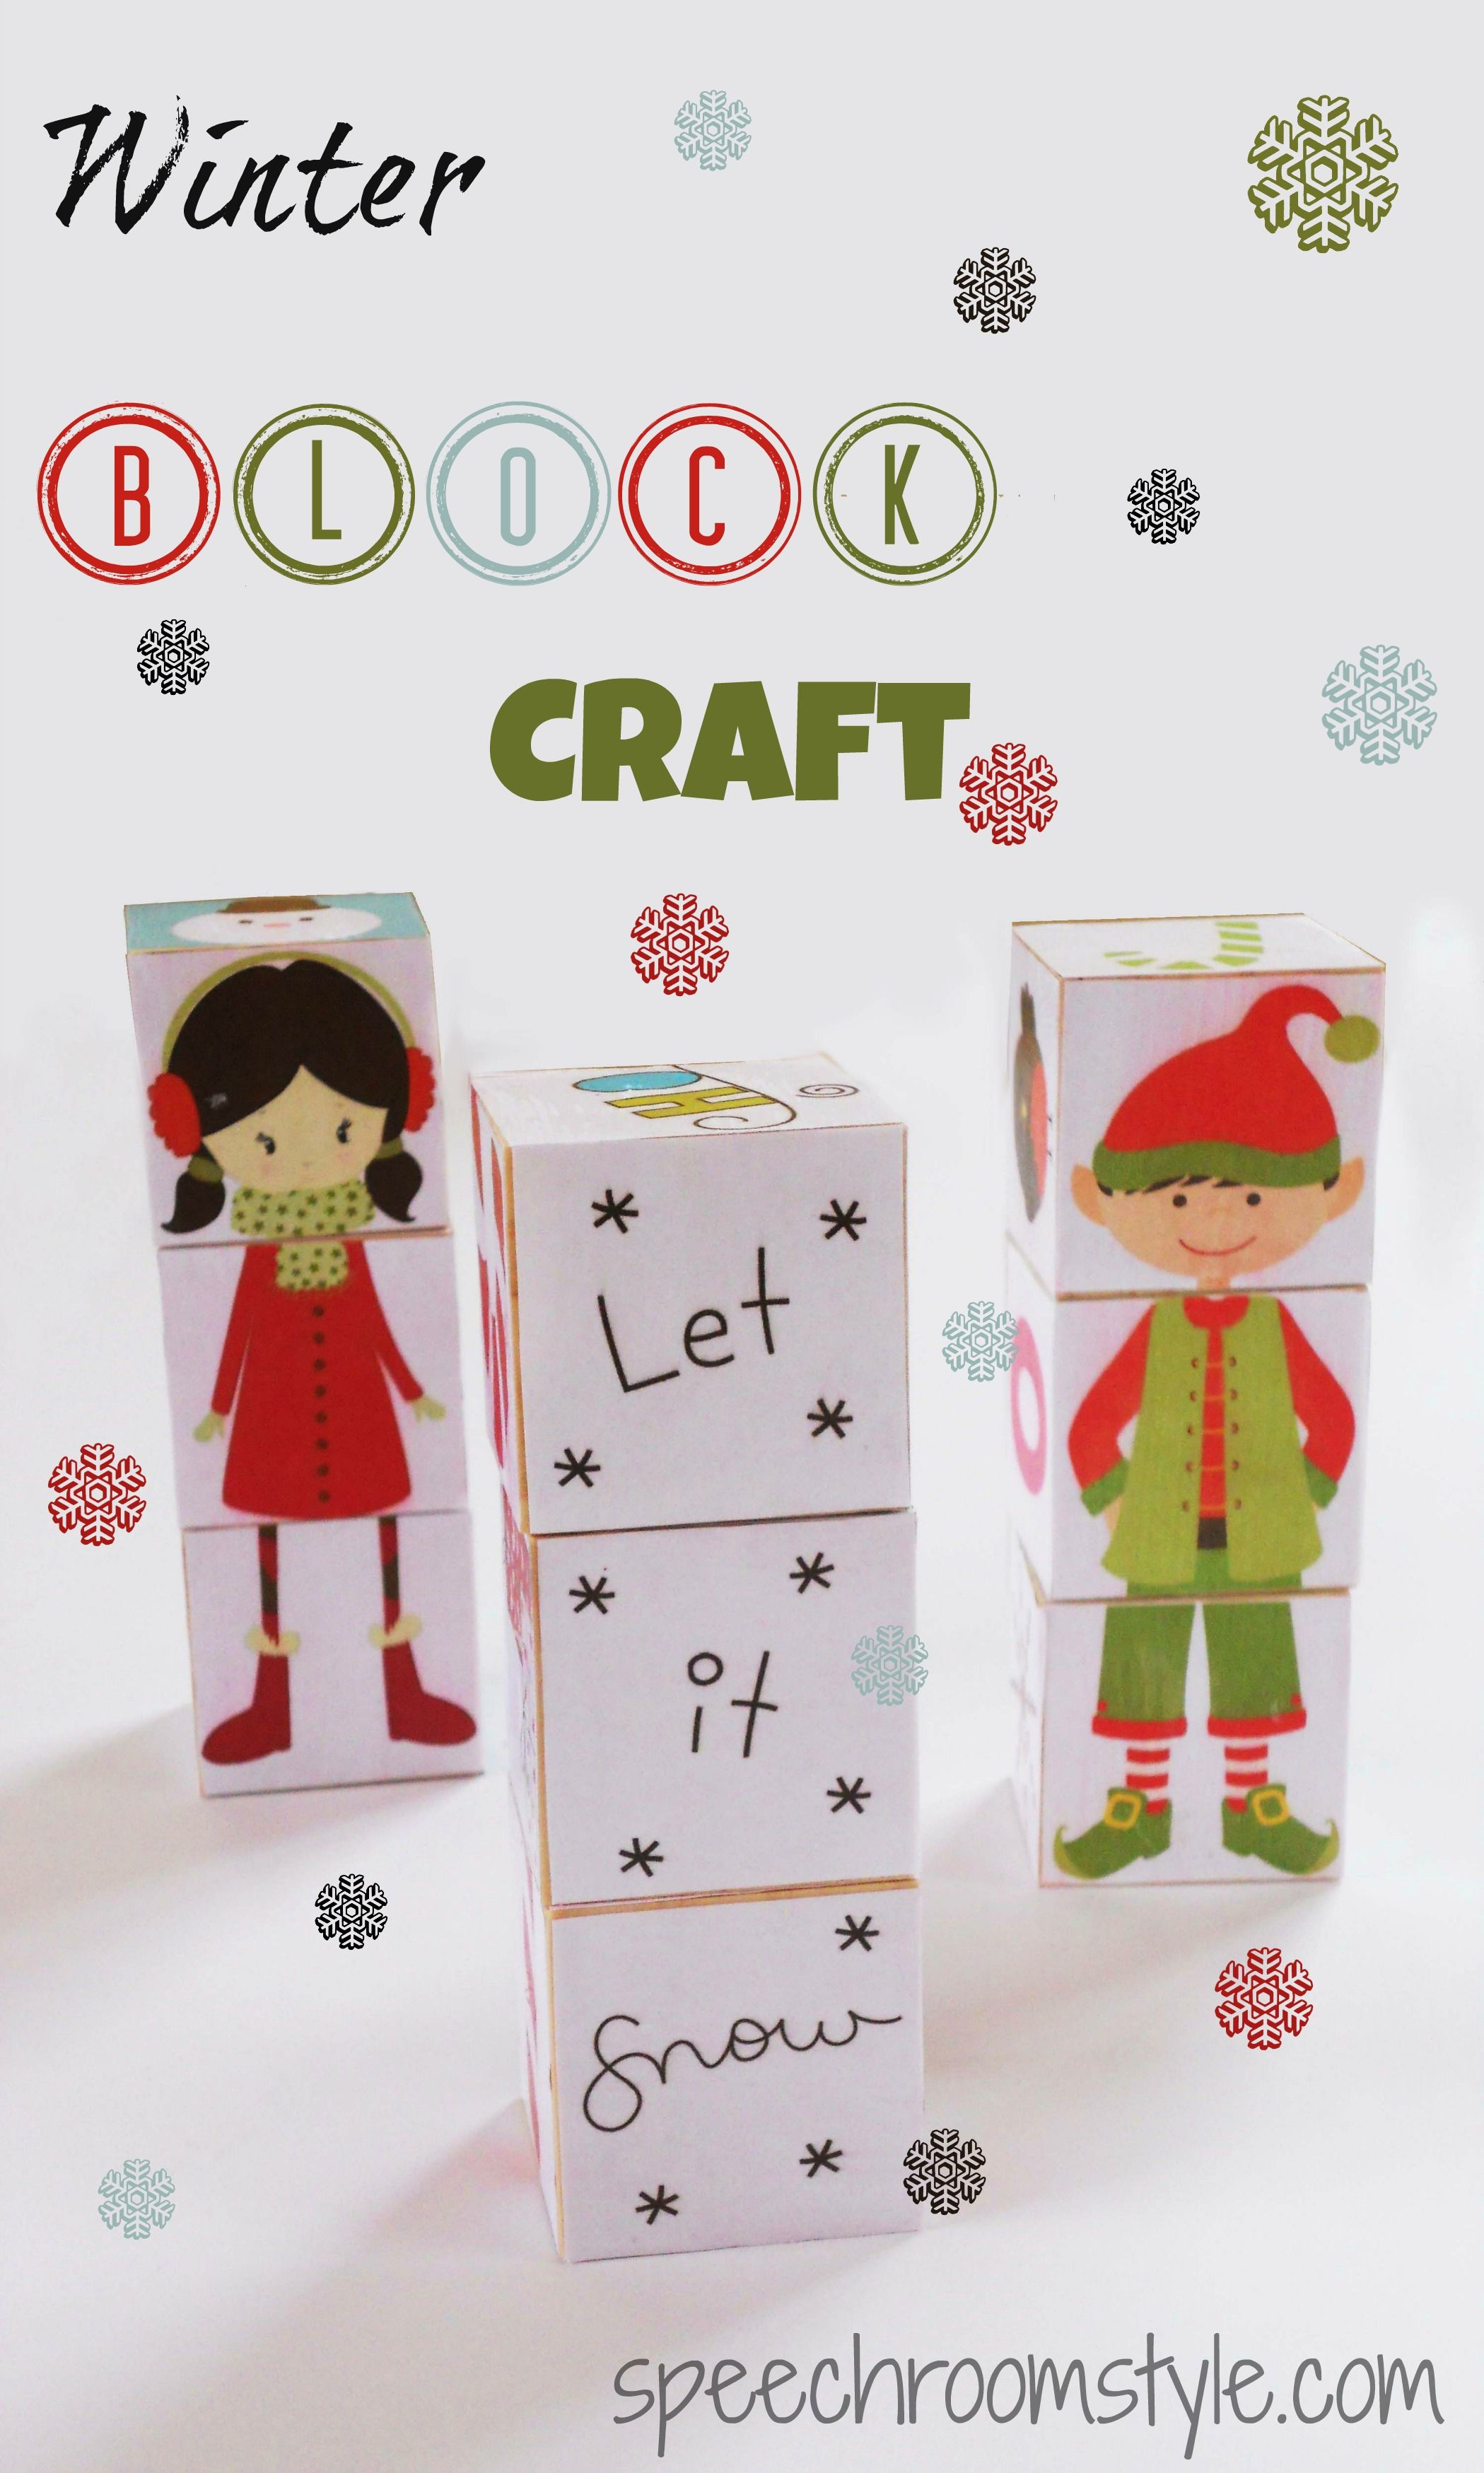 10 Winter Crafts to make with Kids The Weekly Round Up